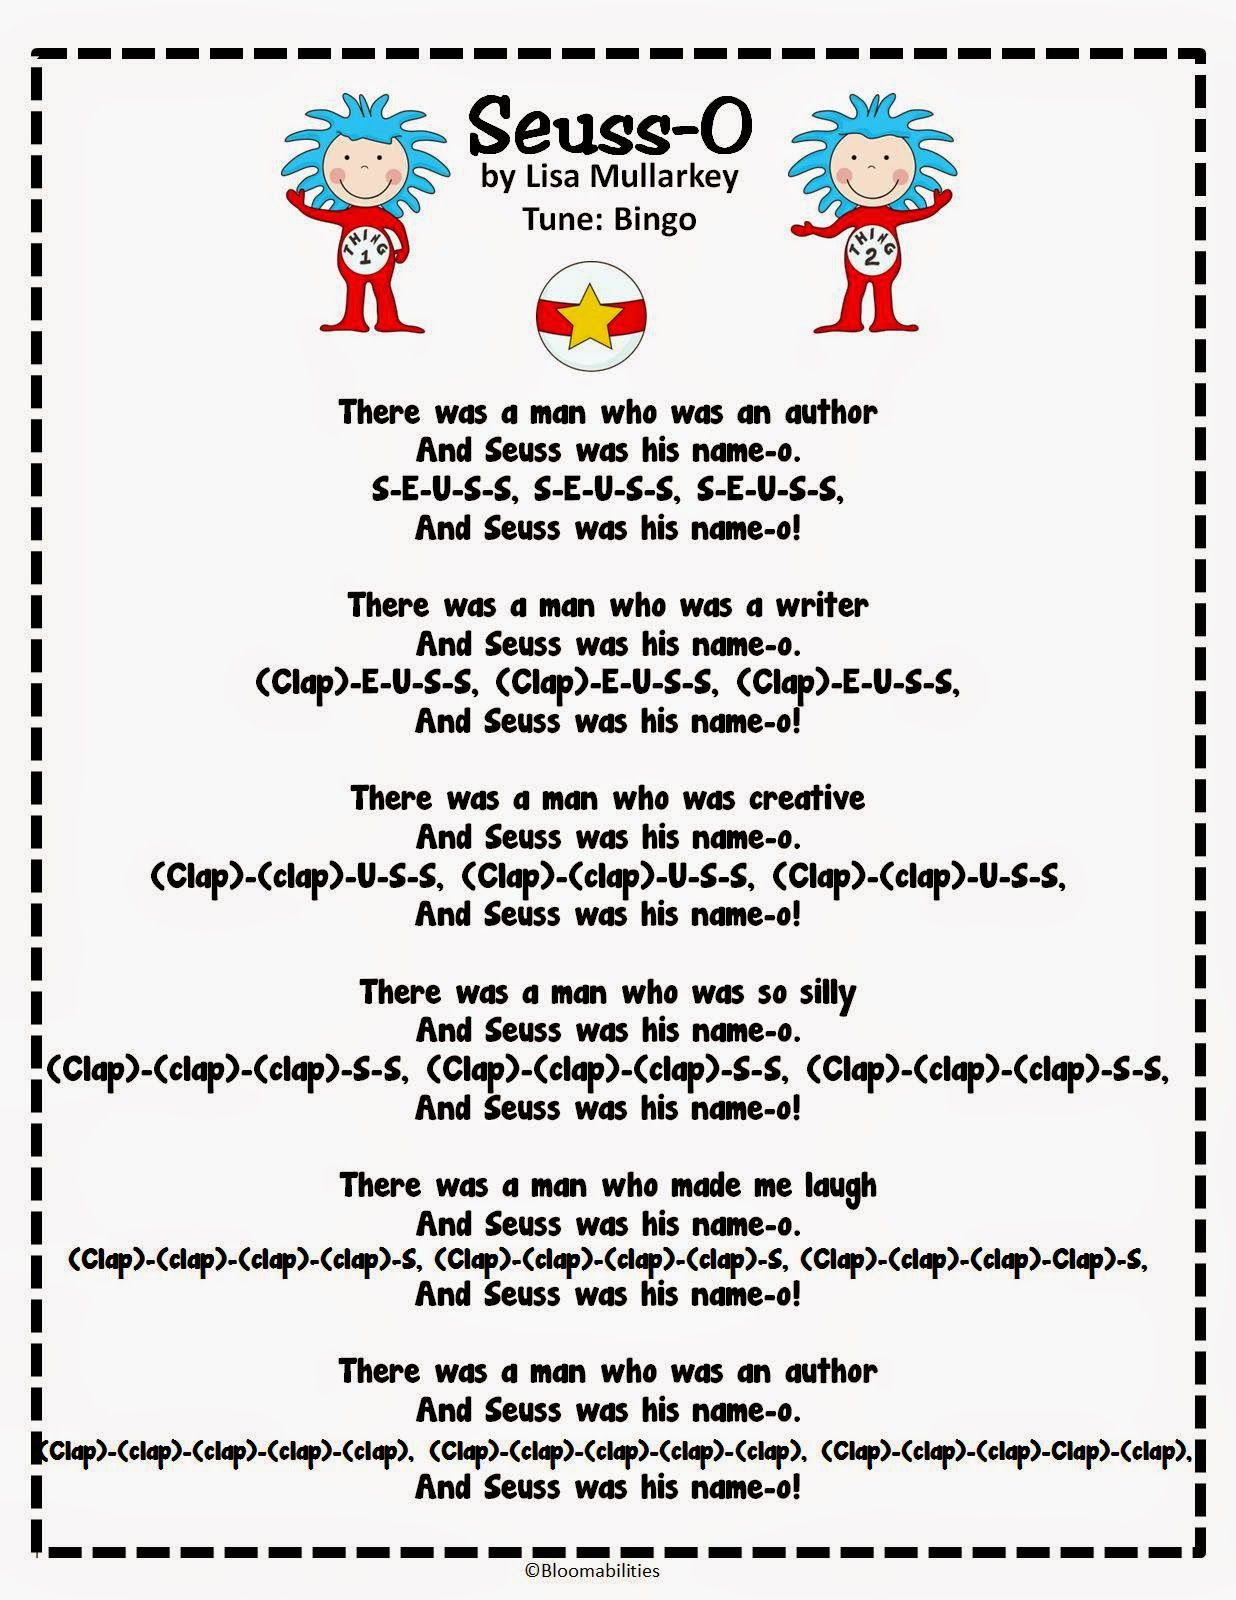 dr seuss song to the tune of bingo perfect for the month of